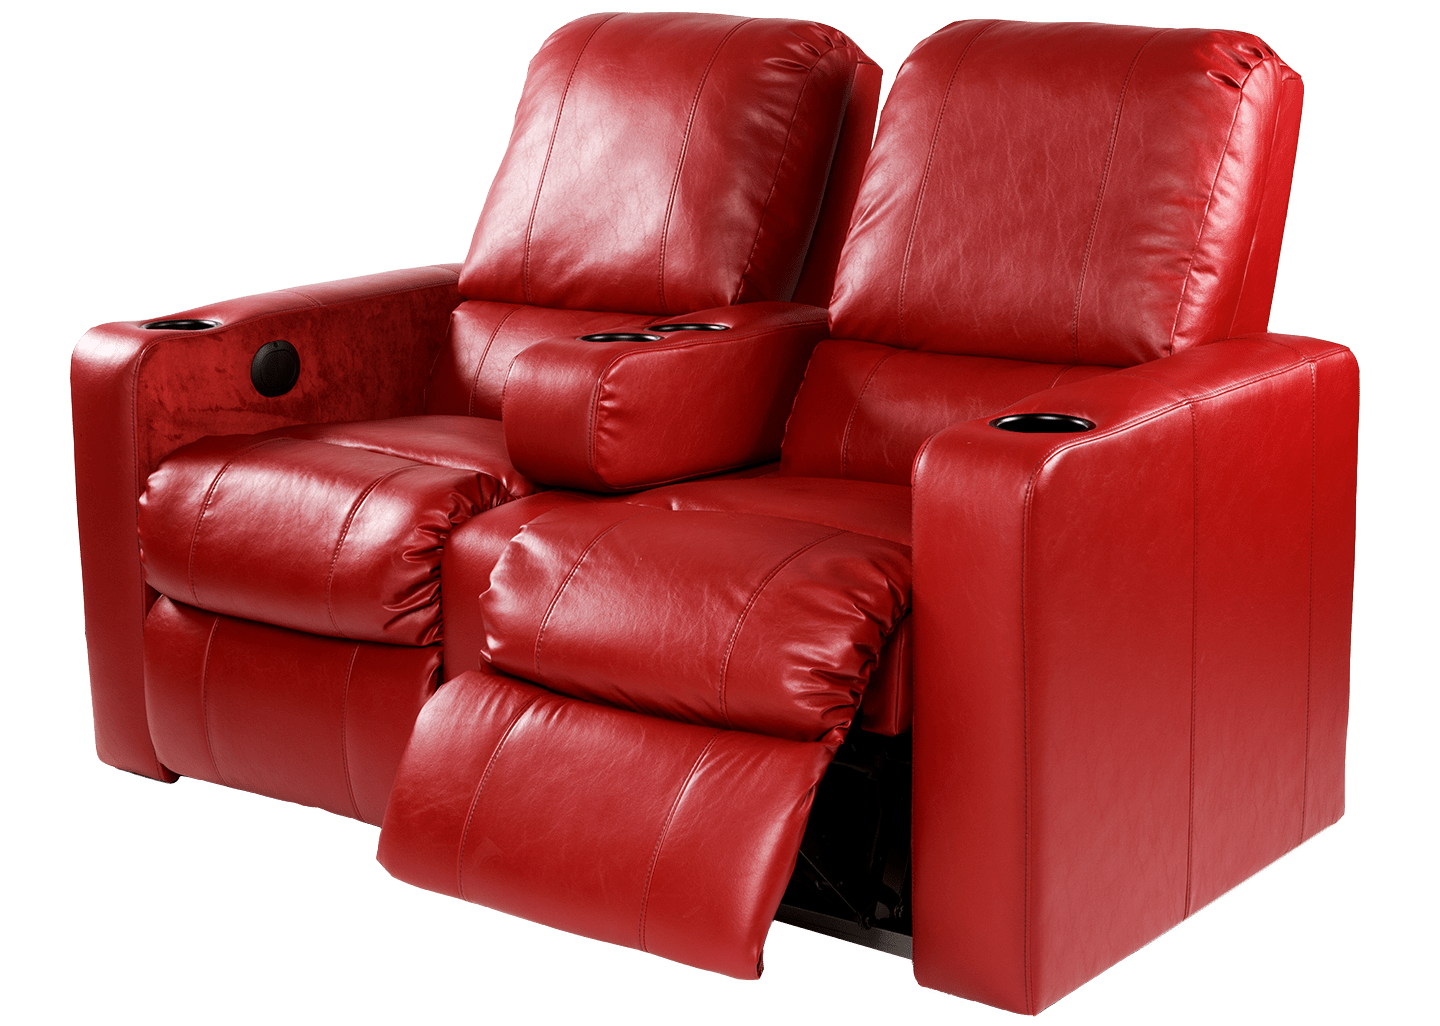 Movie Theater Chairs Recliner Seating